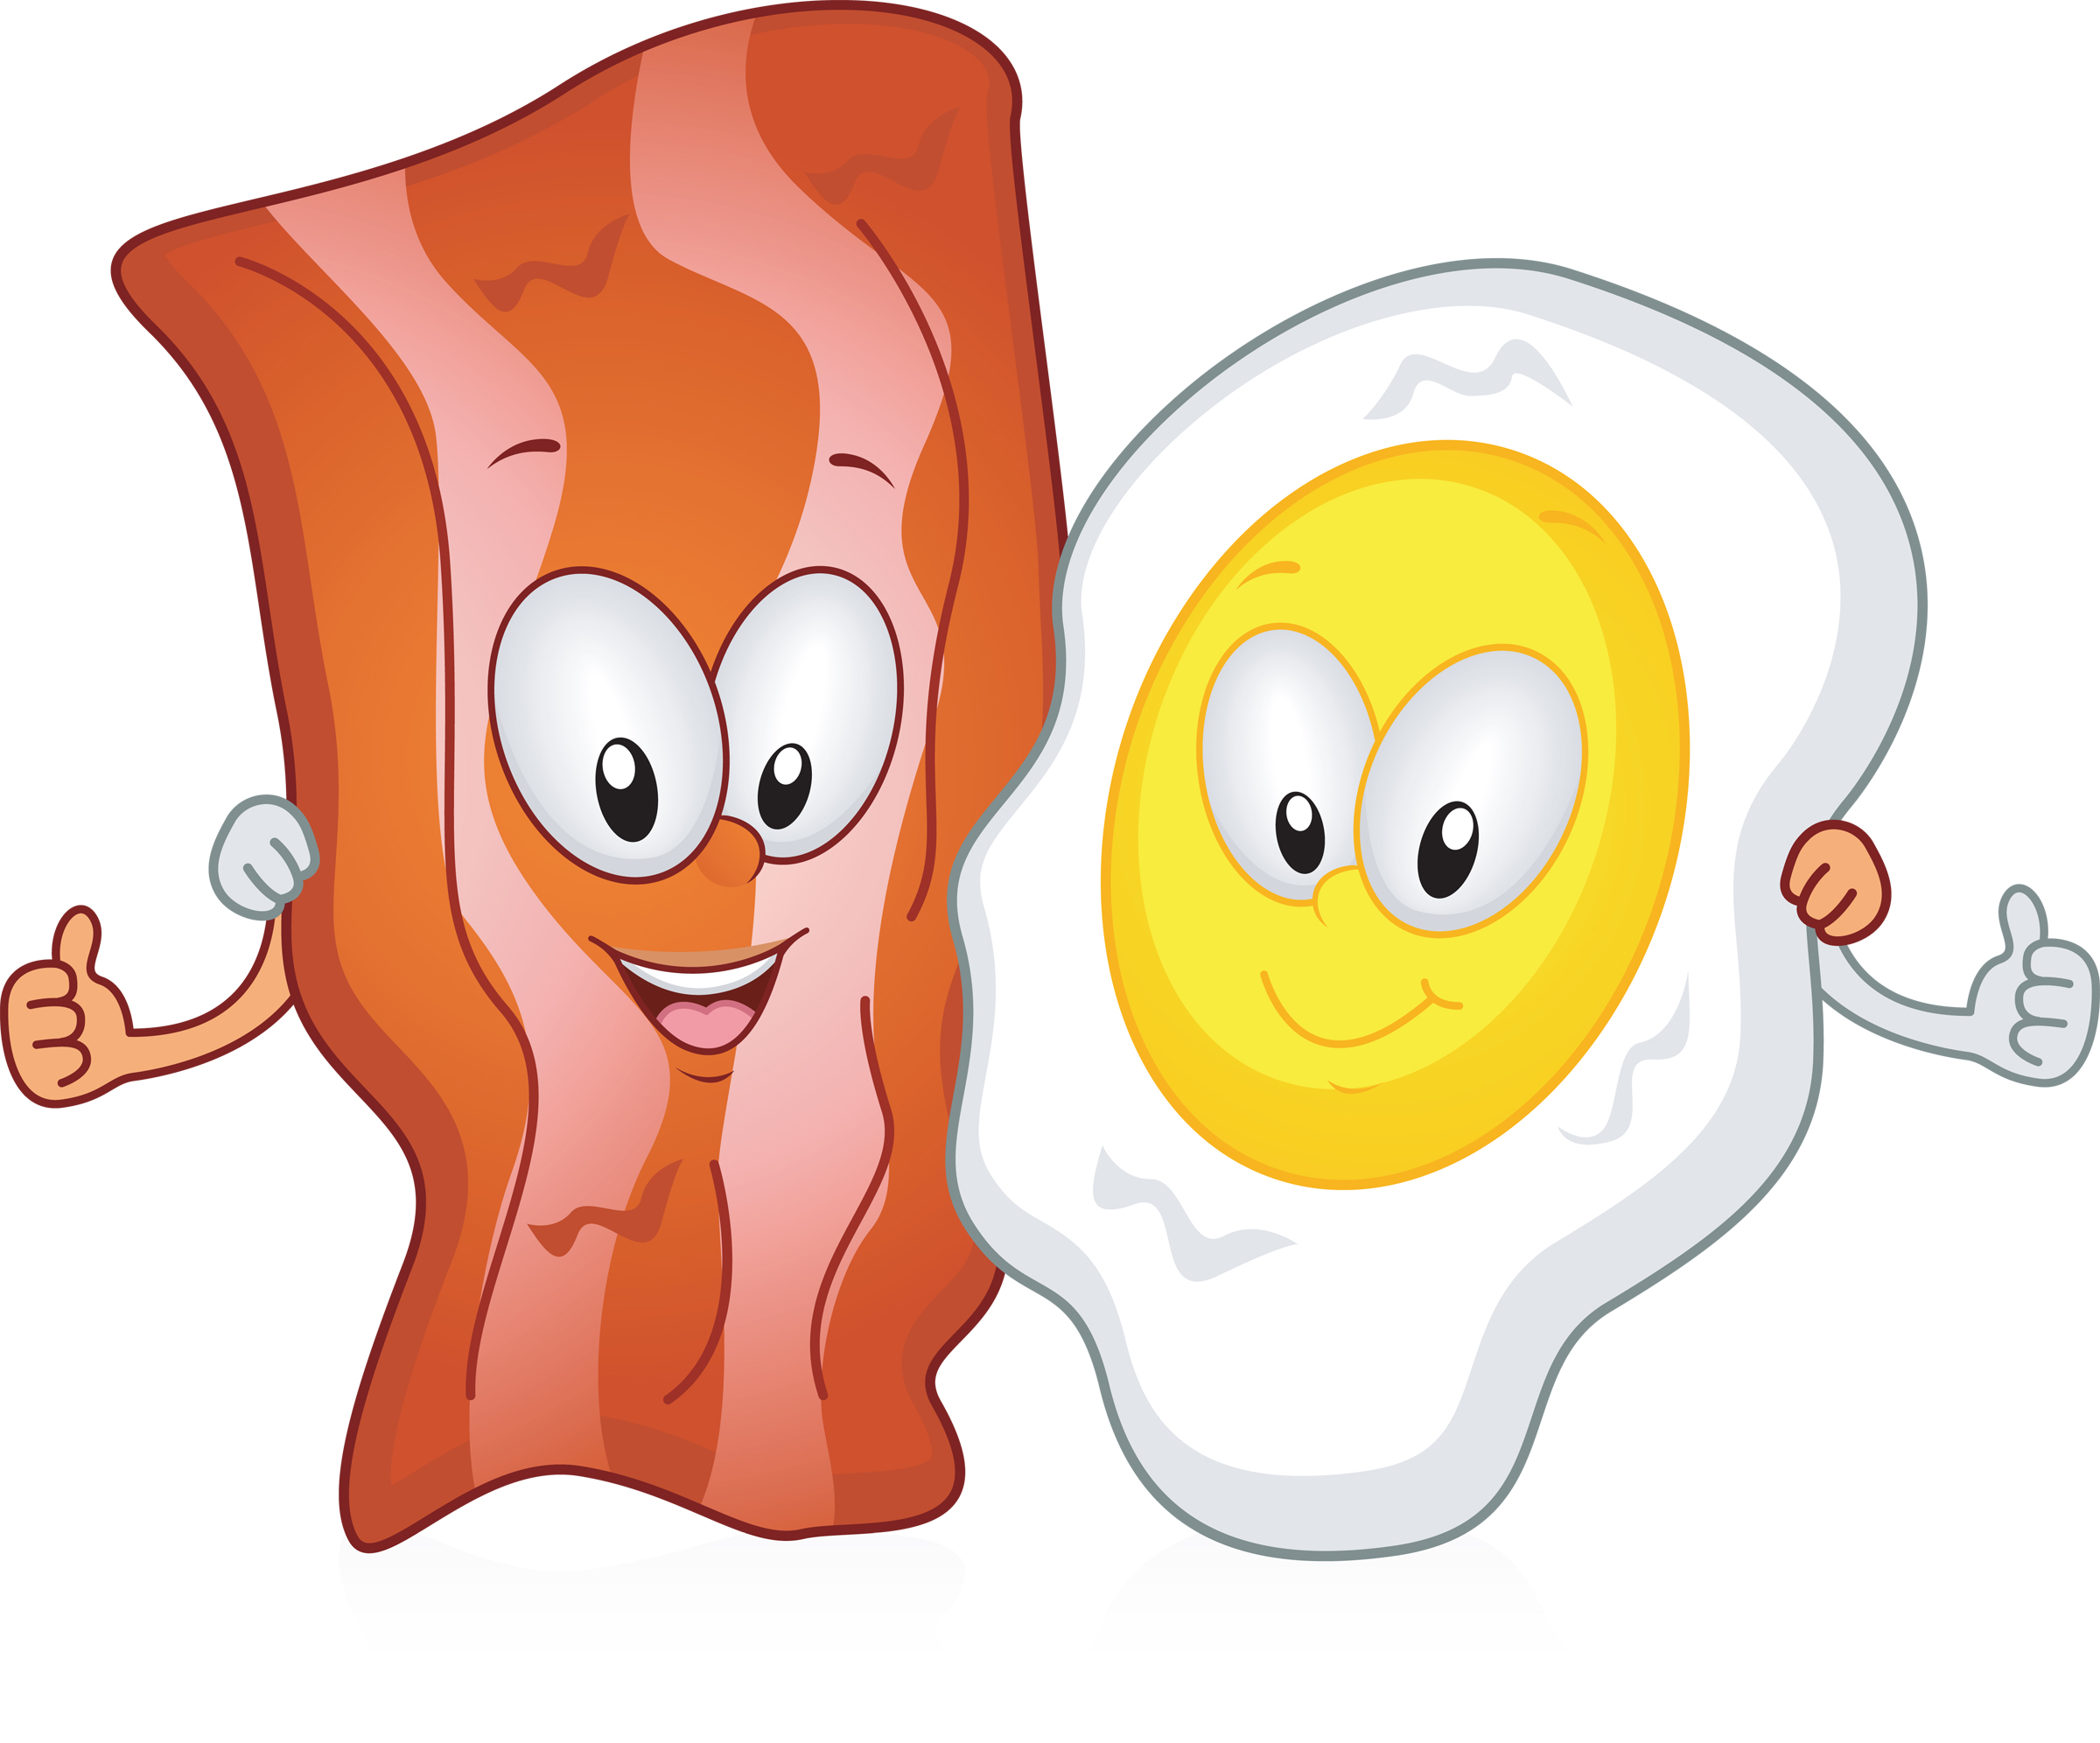 Free clipart eggs and bacon clipart transparent Free Cartoon Eggs Cliparts, Download Free Clip Art, Free Clip Art on ... clipart transparent